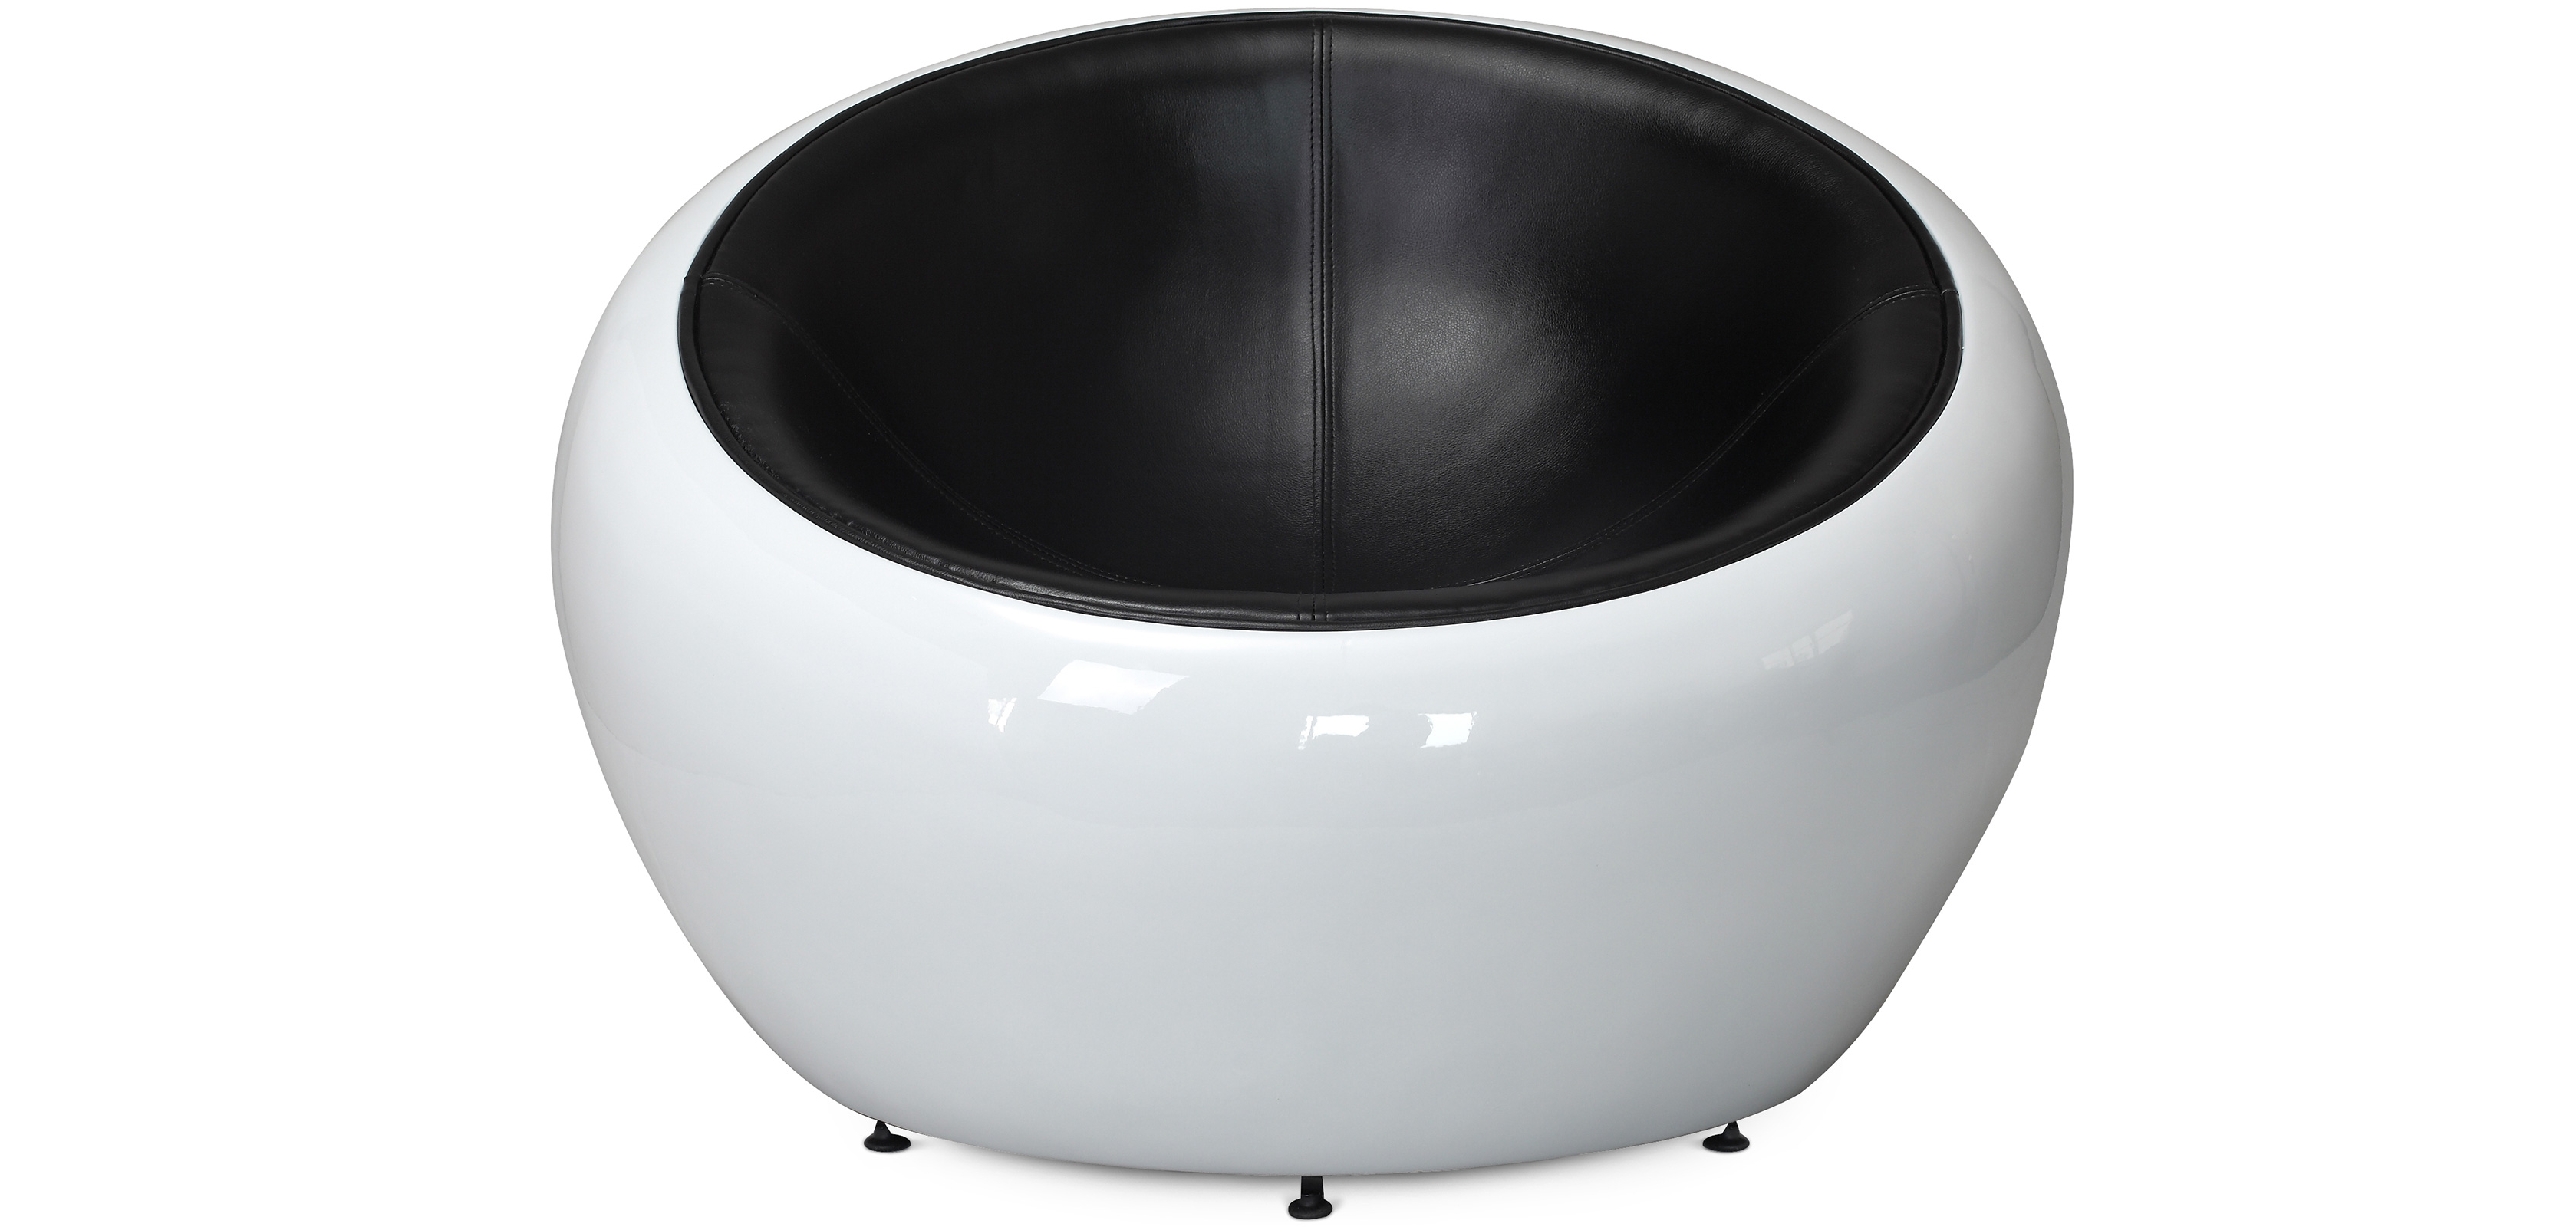 fauteuil egg pod ball chair style eero aarnio simili cuir pas cher. Black Bedroom Furniture Sets. Home Design Ideas